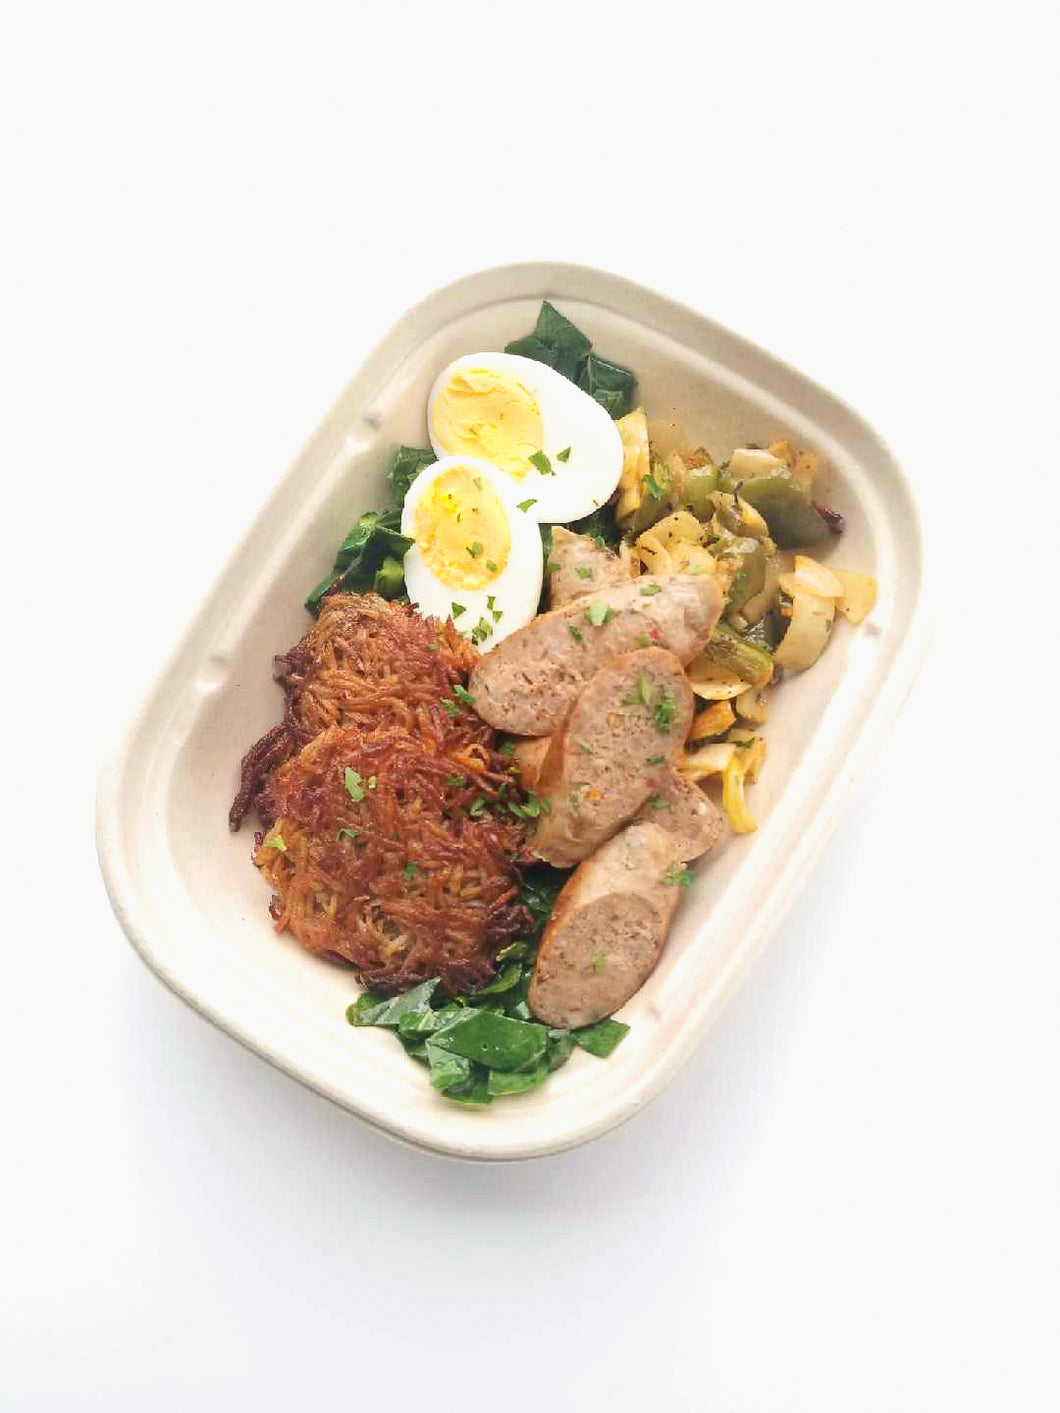 Diner Bowl with Hash Browns, Sauteed Greens